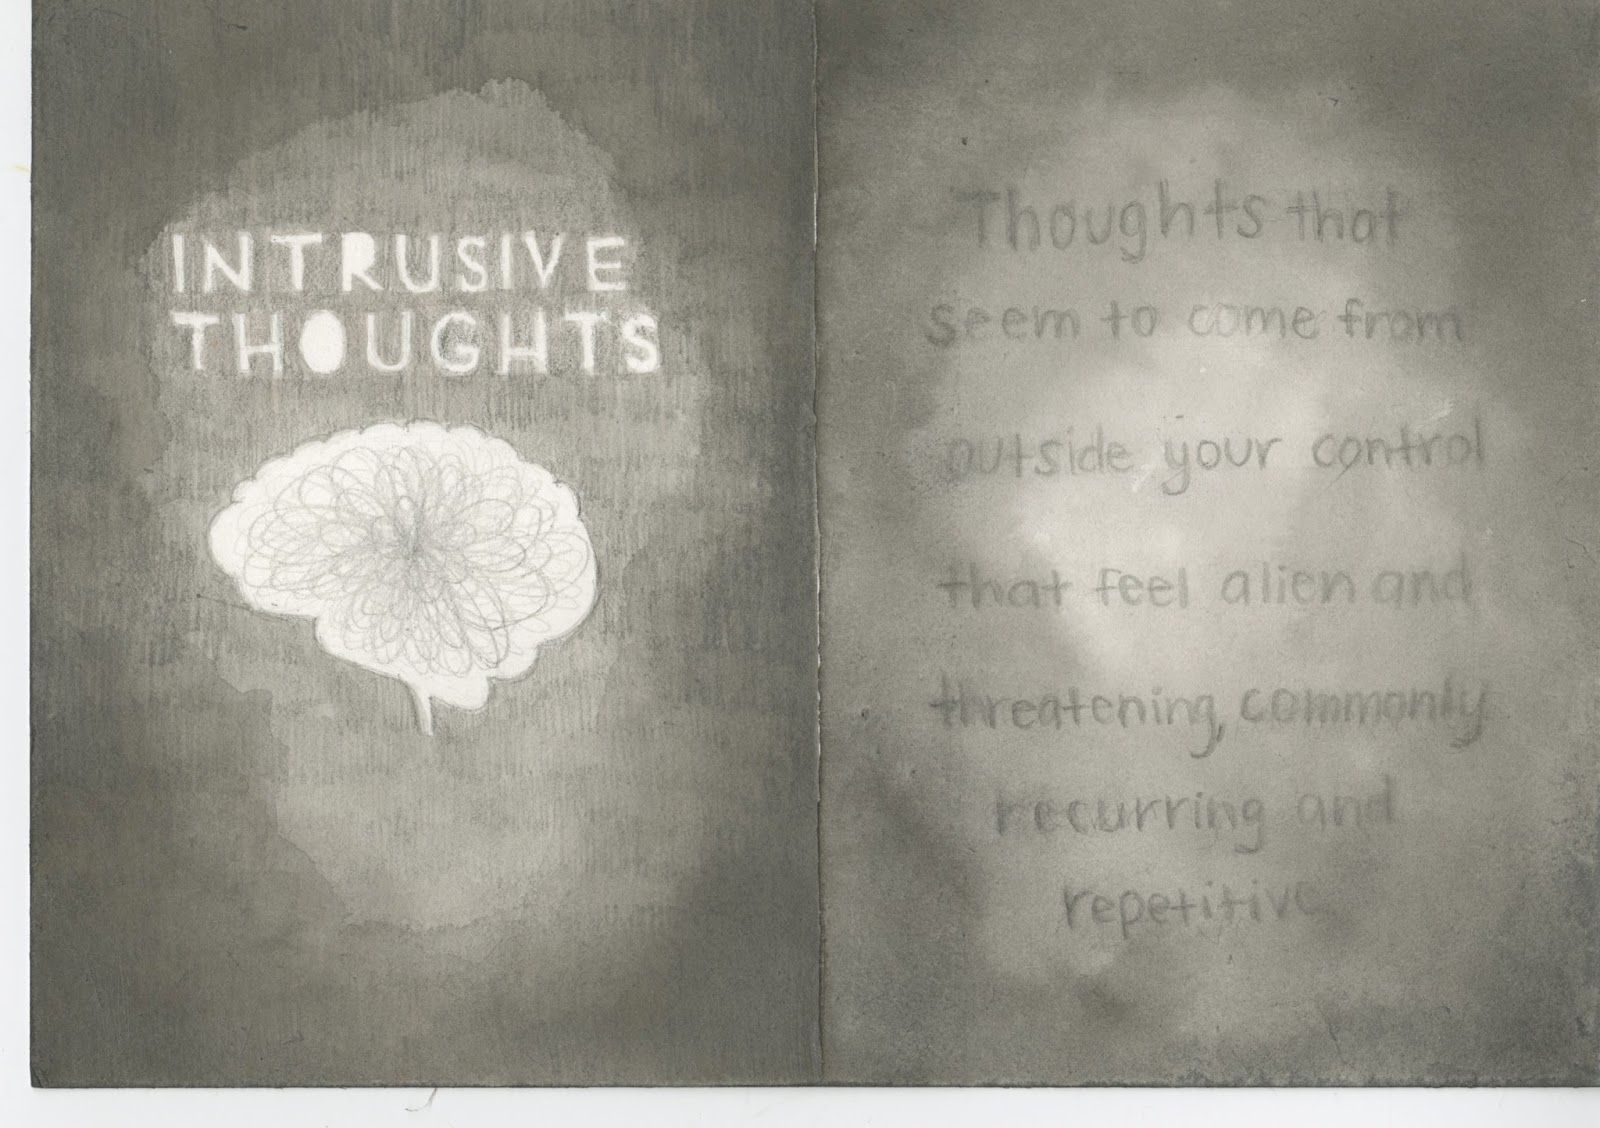 Trim Marks Intrusive Thoughts A Short Art Book About